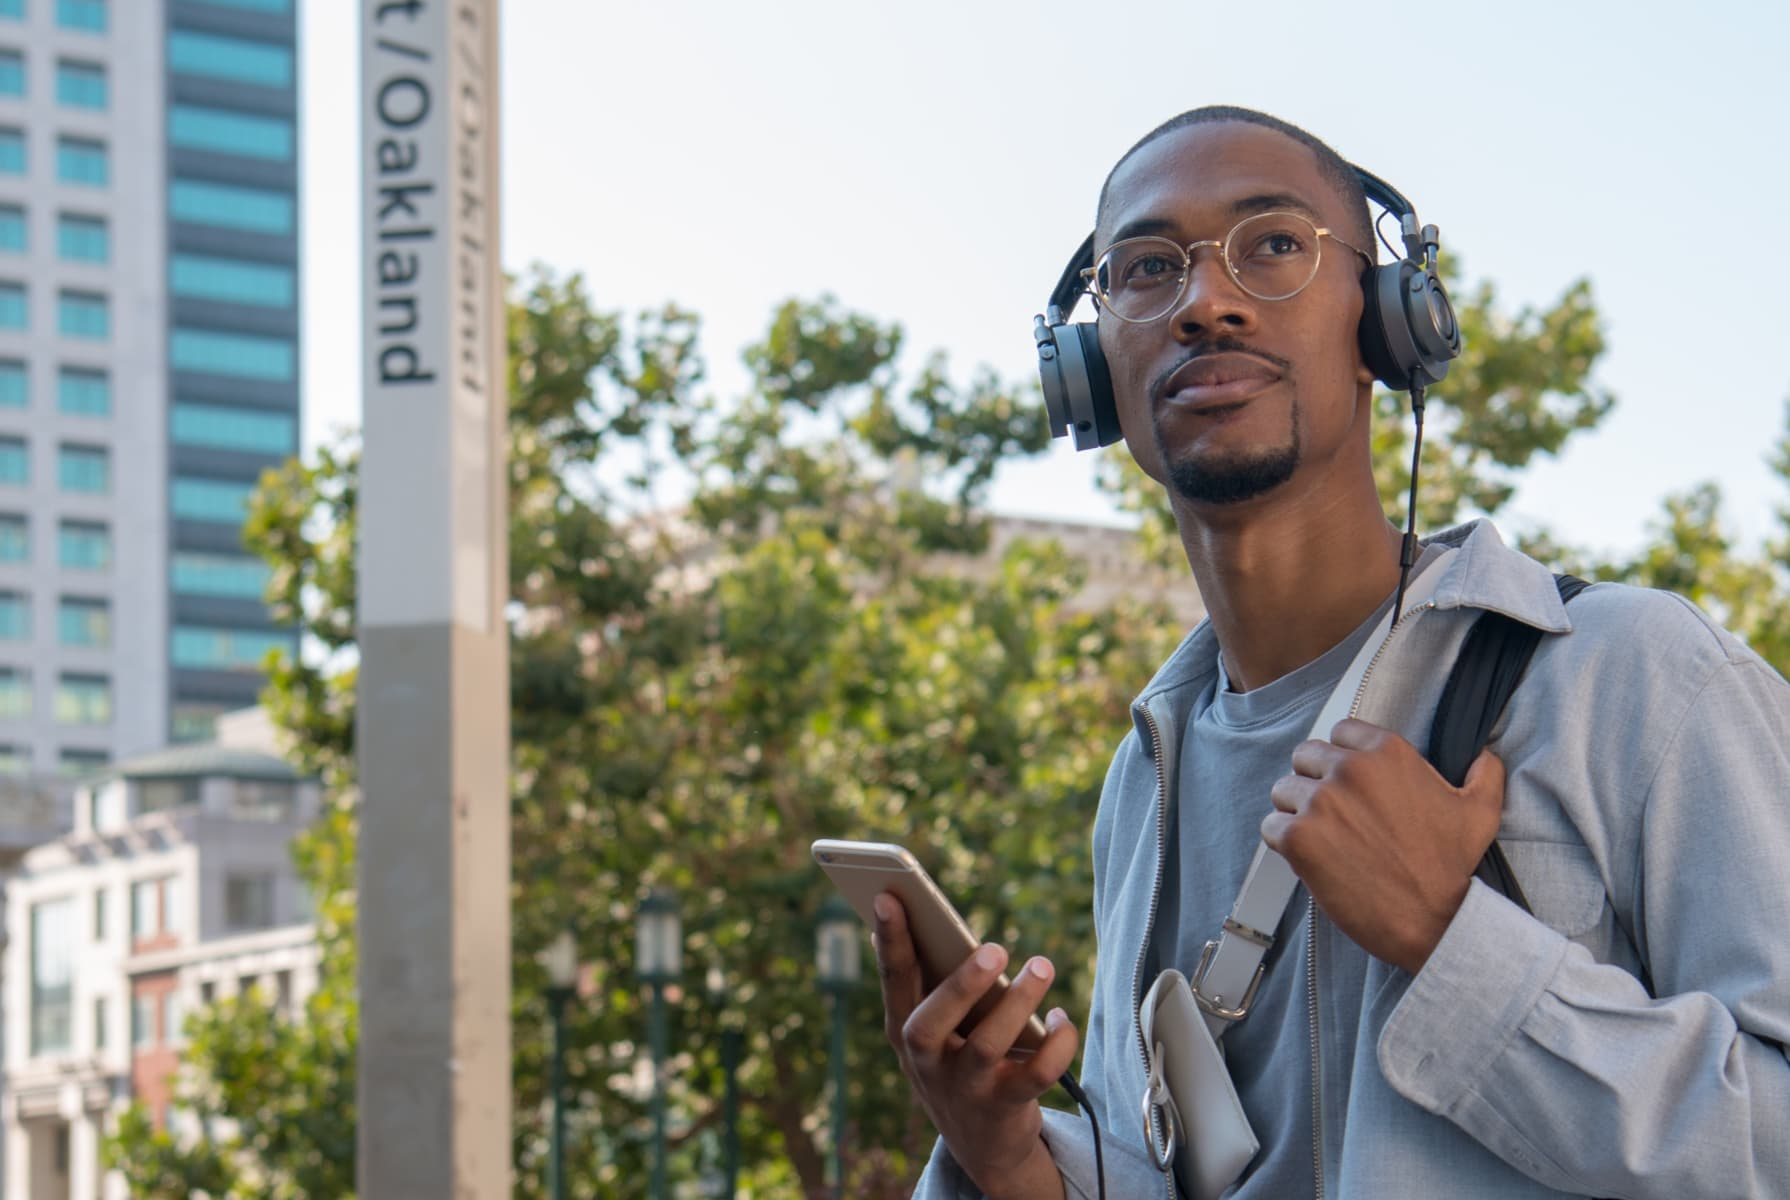 Man with headphones on standing on an Oakland city street.